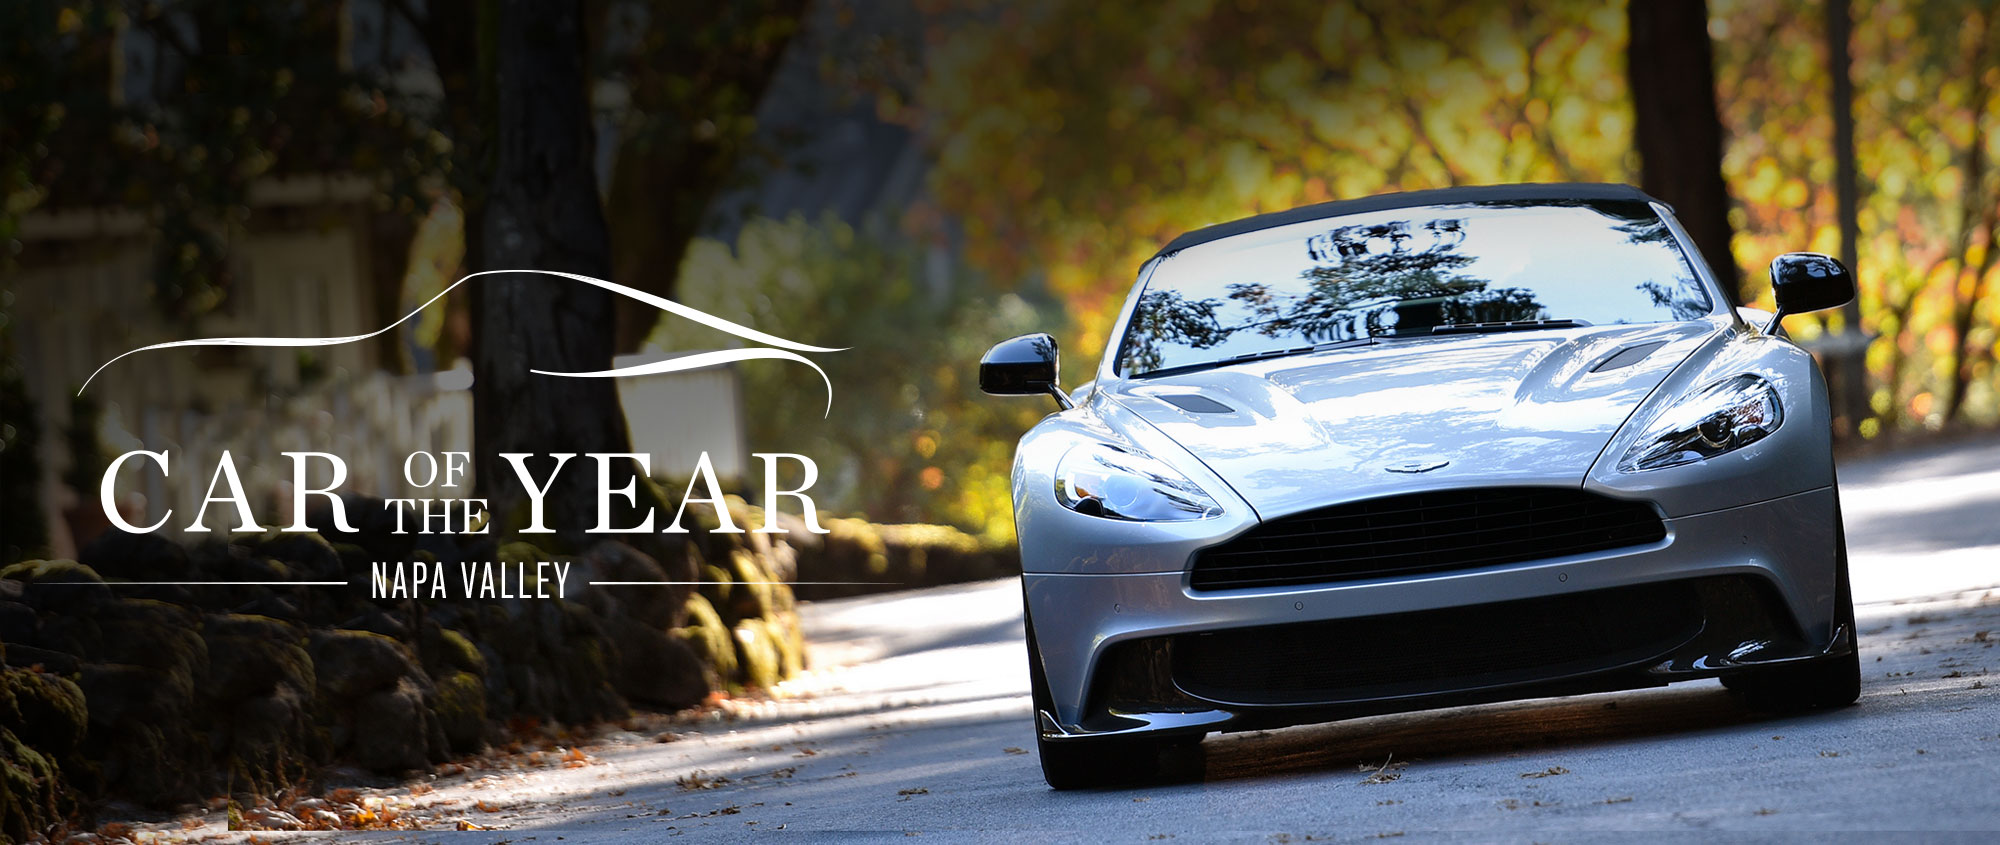 Robb Report Car of the Year Napa Valley Meadowood